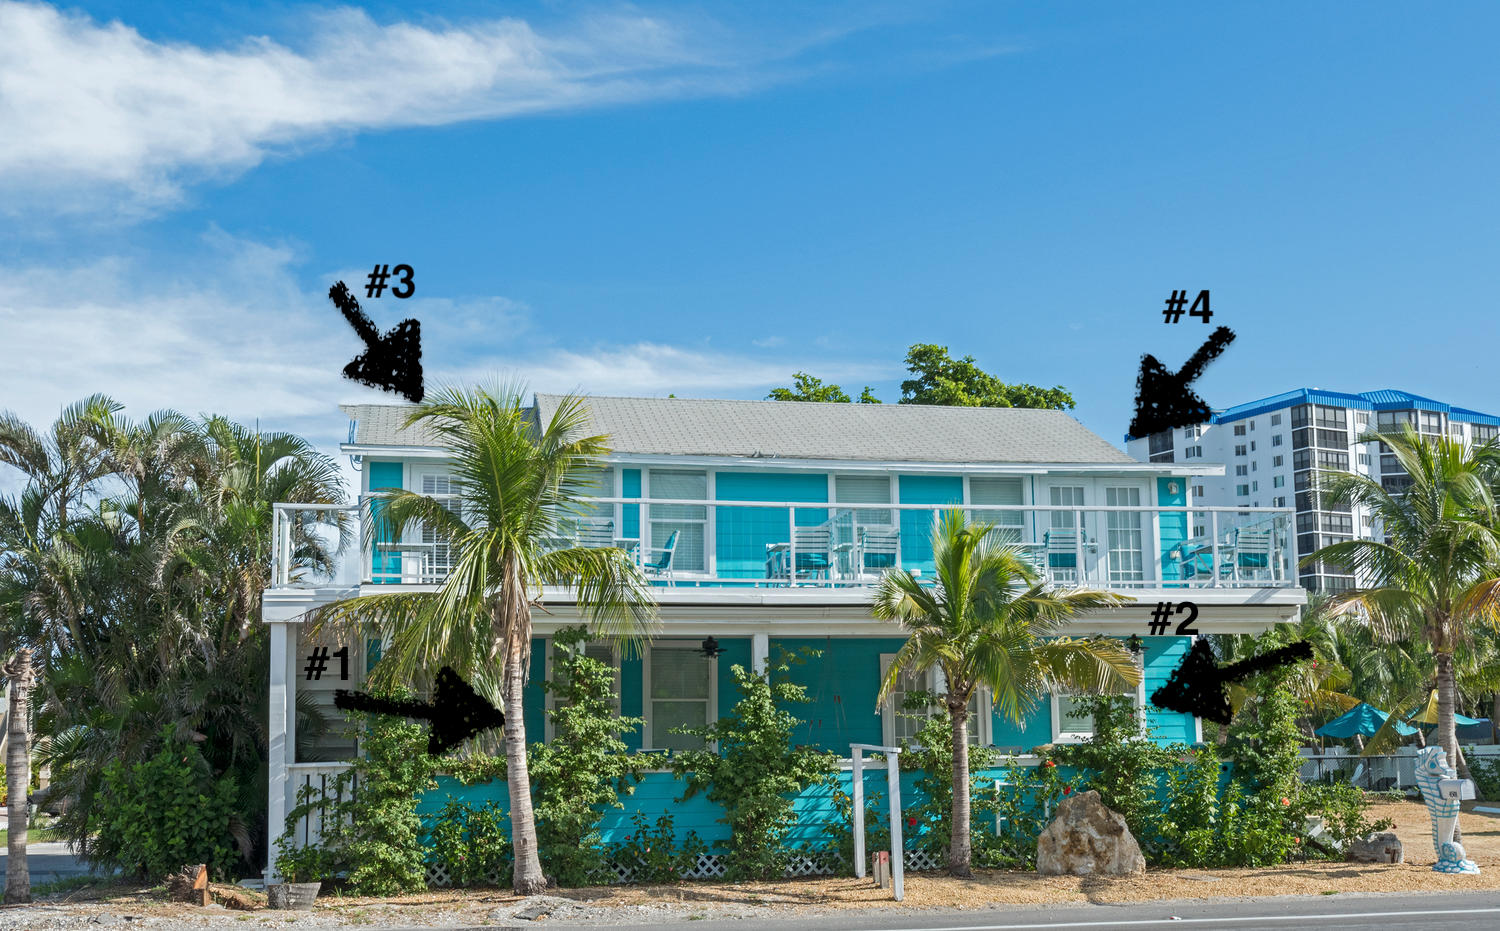 Oceanic building, here are located Oceanic 1,2,3,4 - all are 2 bedroom units!